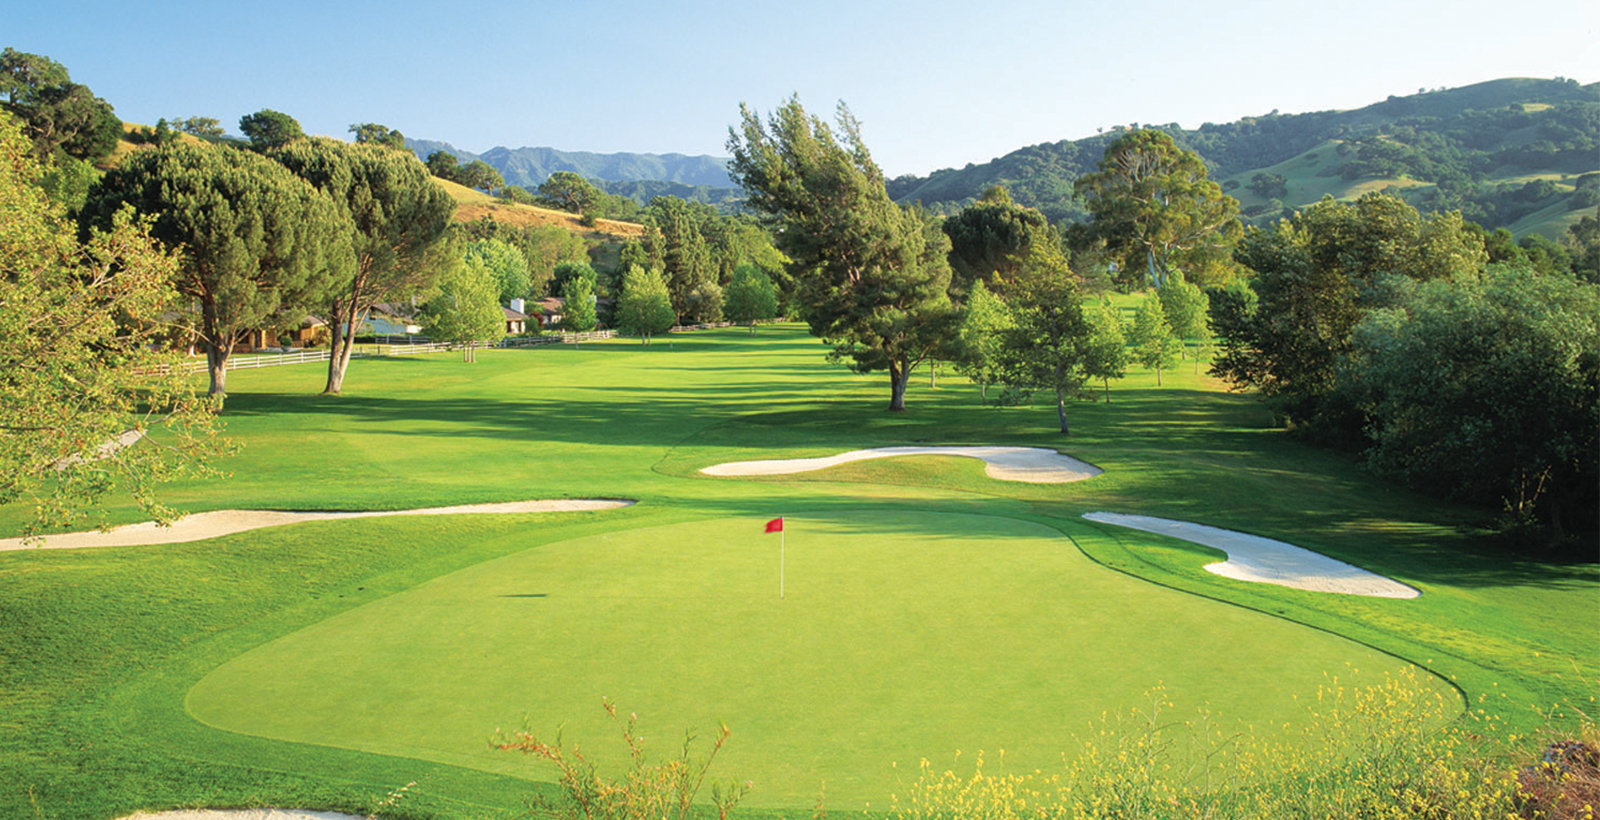 The Ranch Course at The Alisal